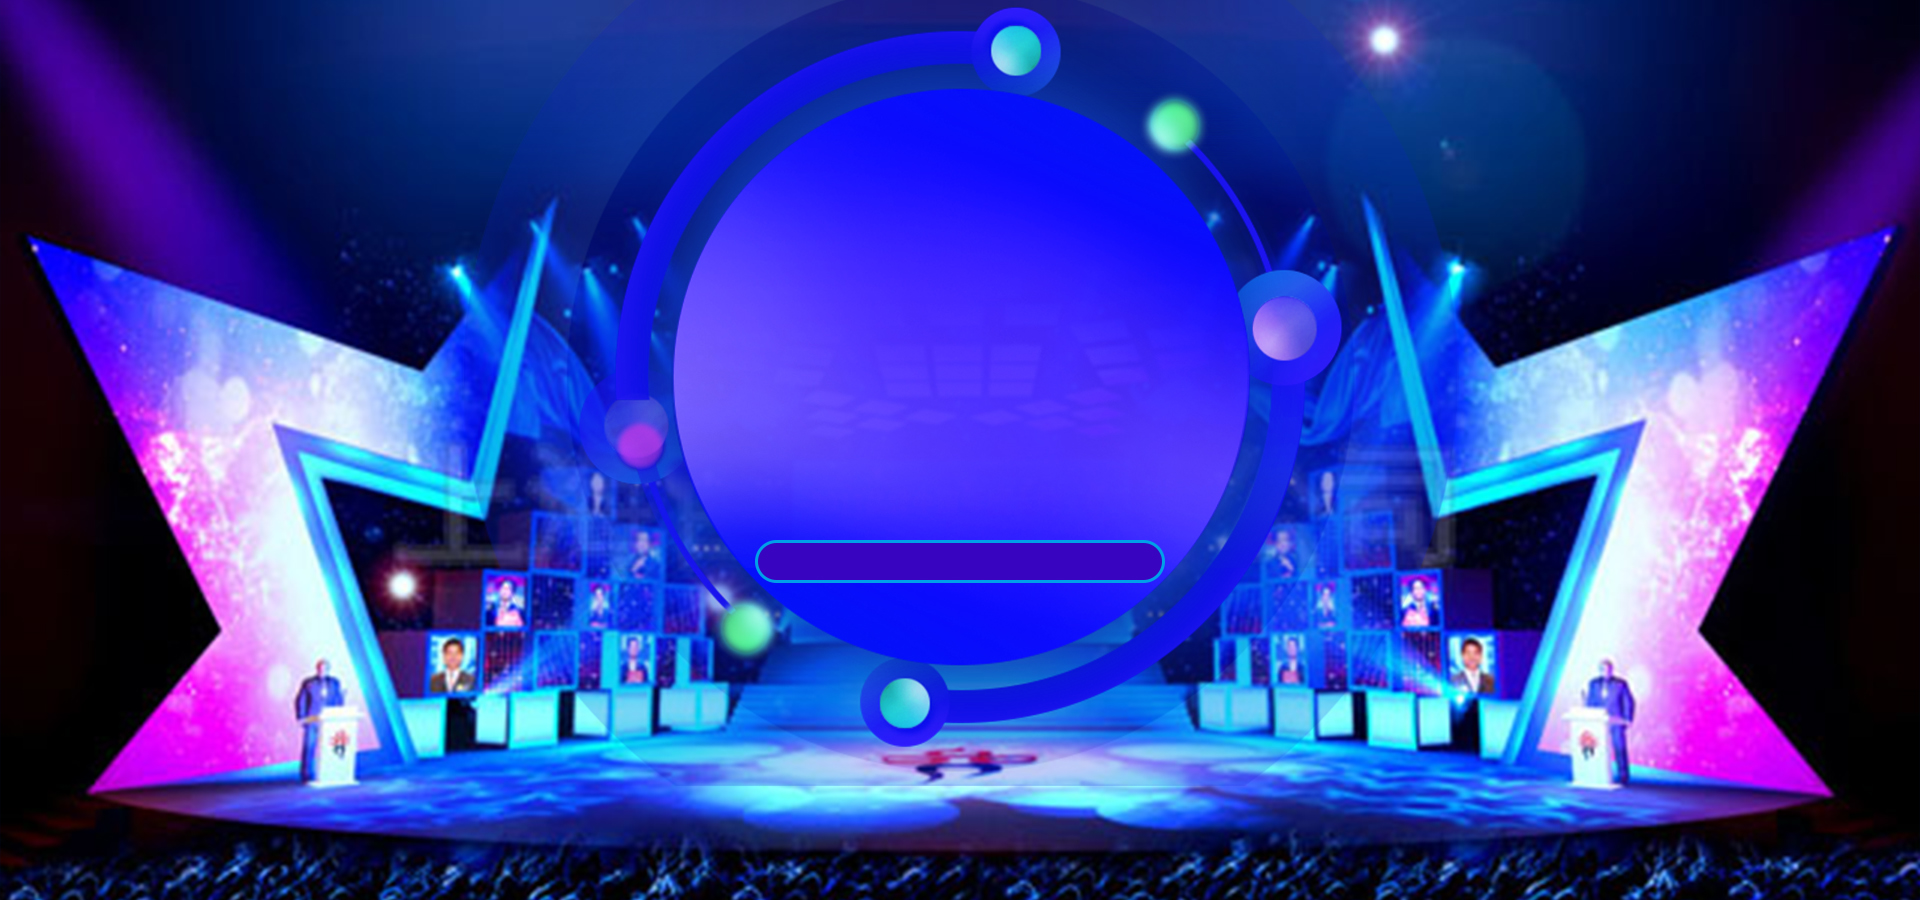 colorful stage background poster  bright  stage  promotions background image for free download